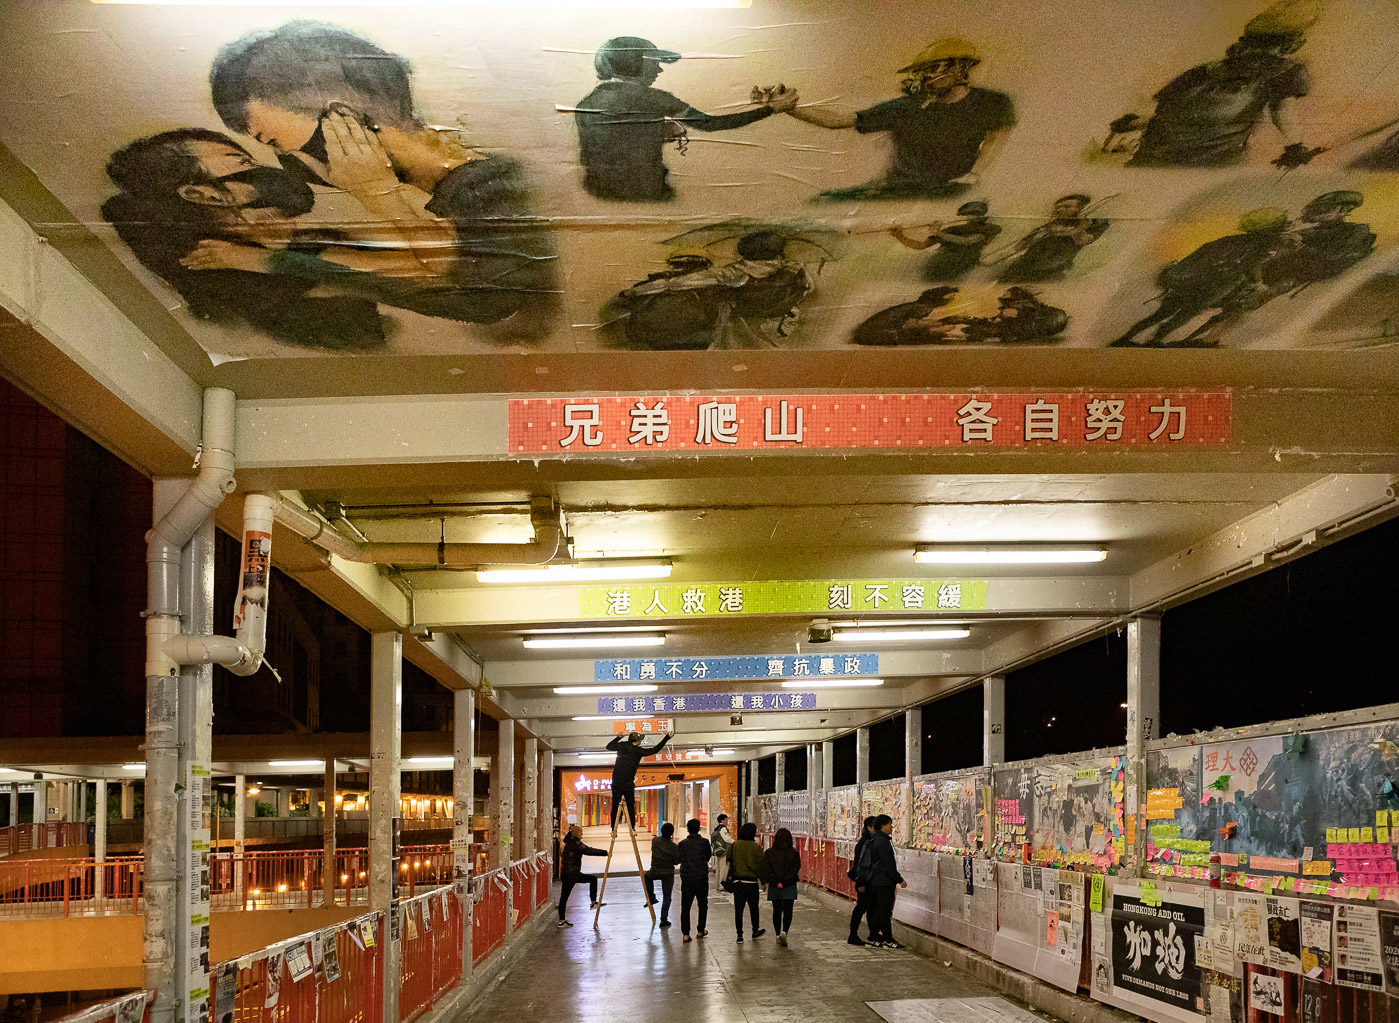 Hong Kong protesters glue posters to the ceiling of a pedestrian walkway near the Tsuen Wan MTR station.